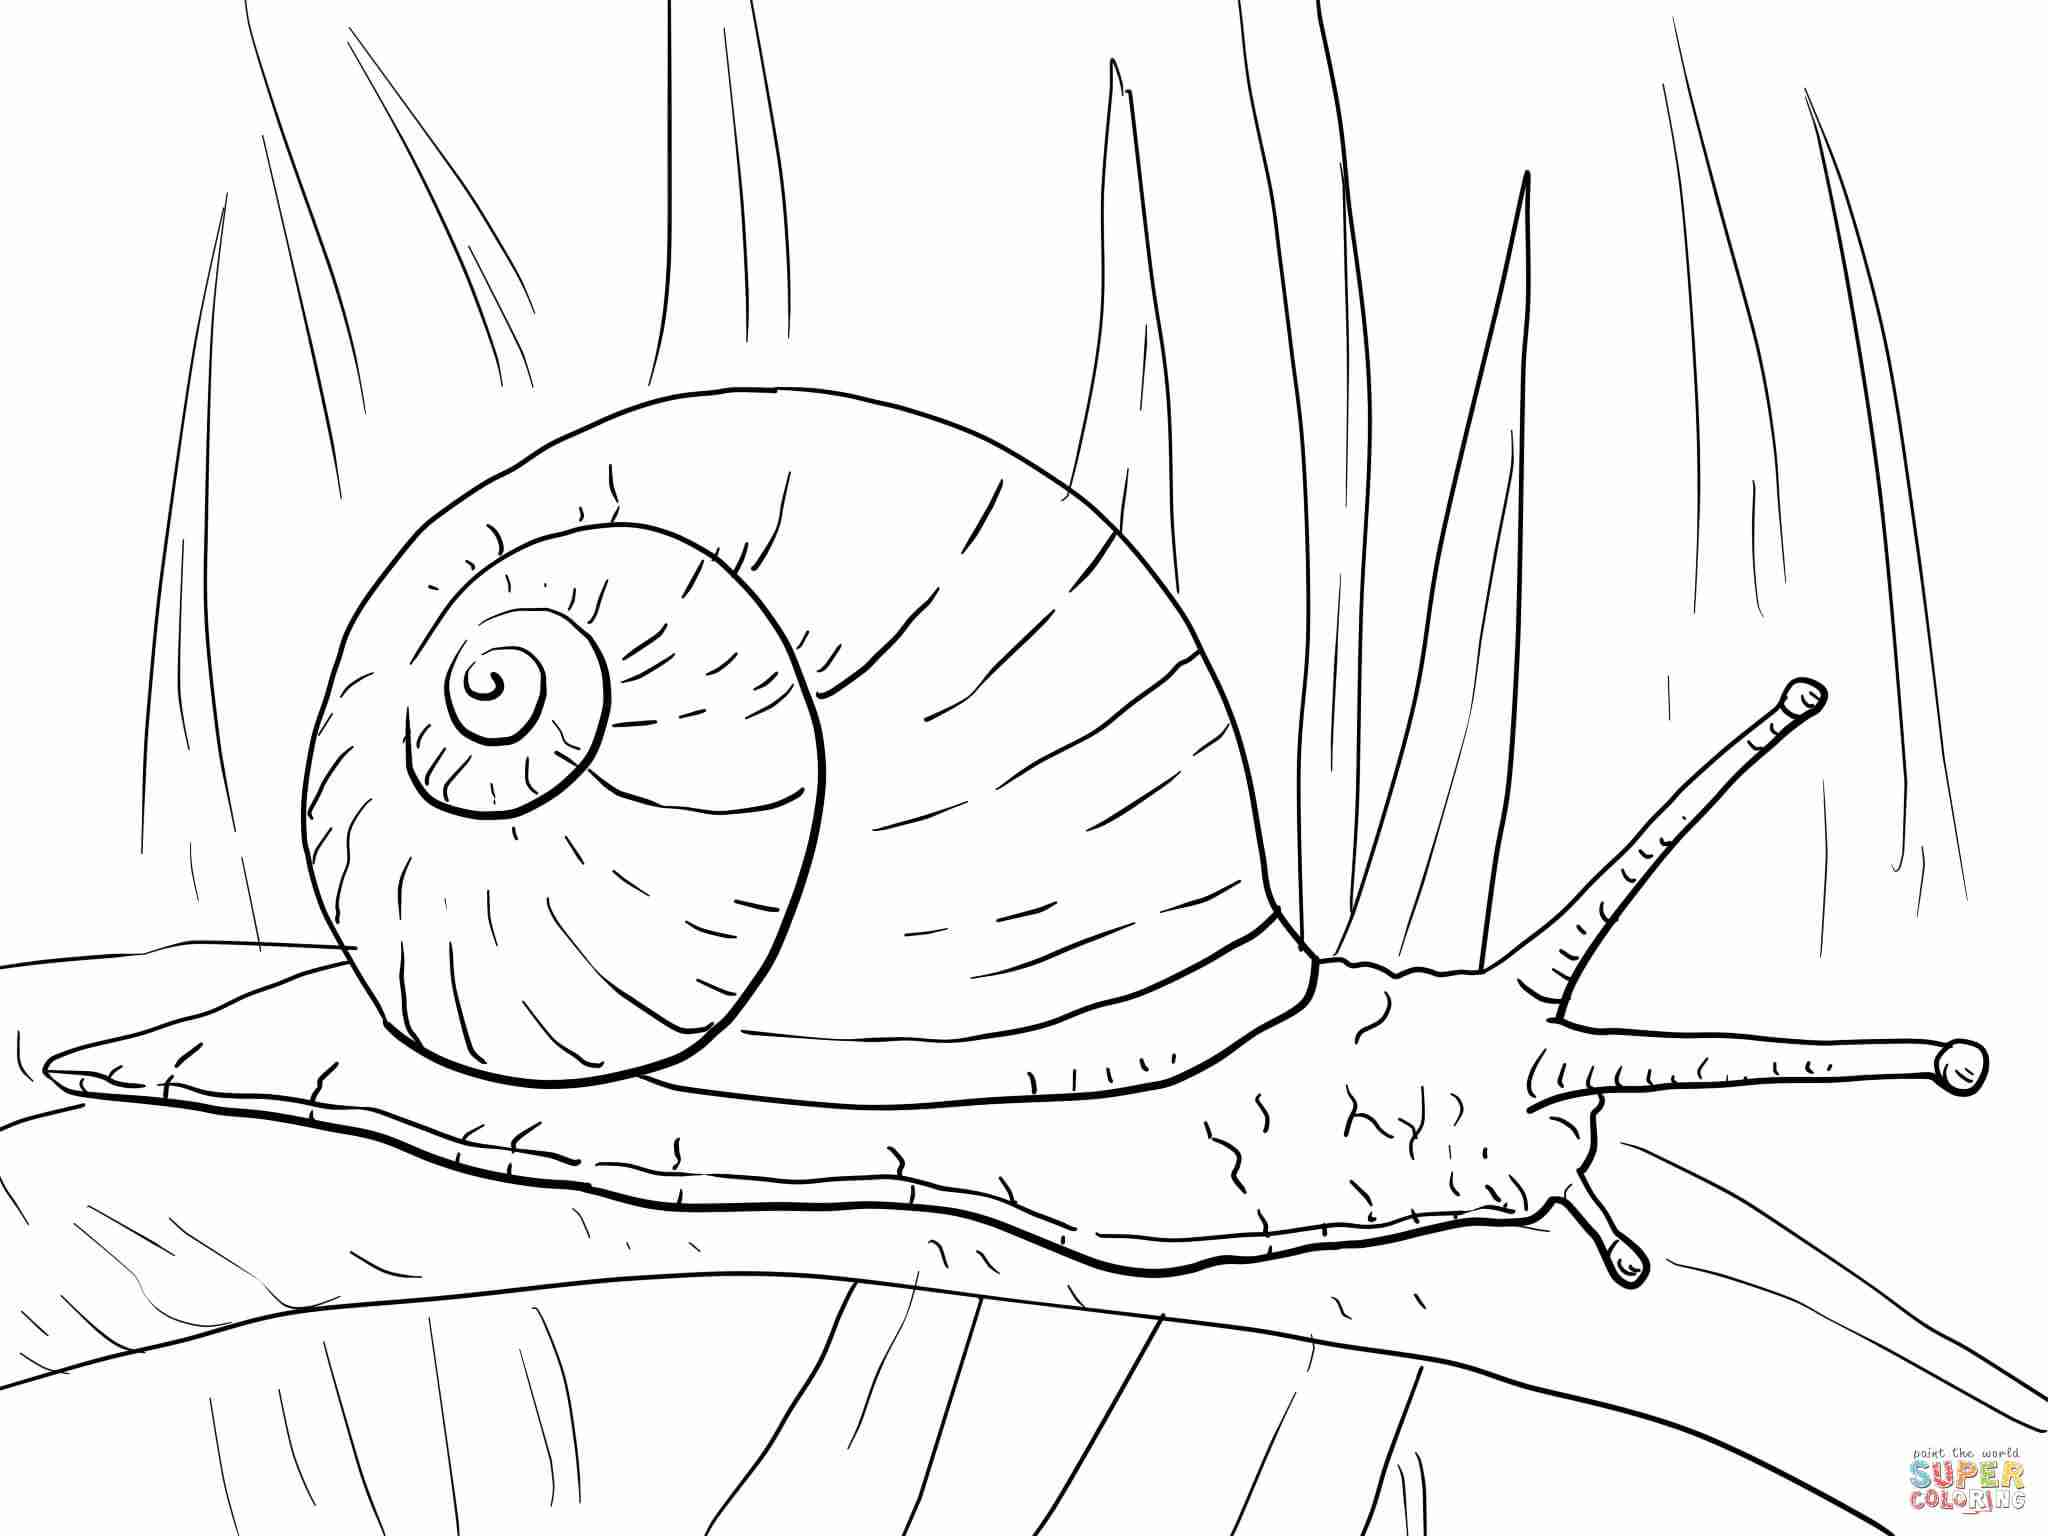 2048x1536 Sea Snail Drawing At Getdrawings Com Free For Personal Use